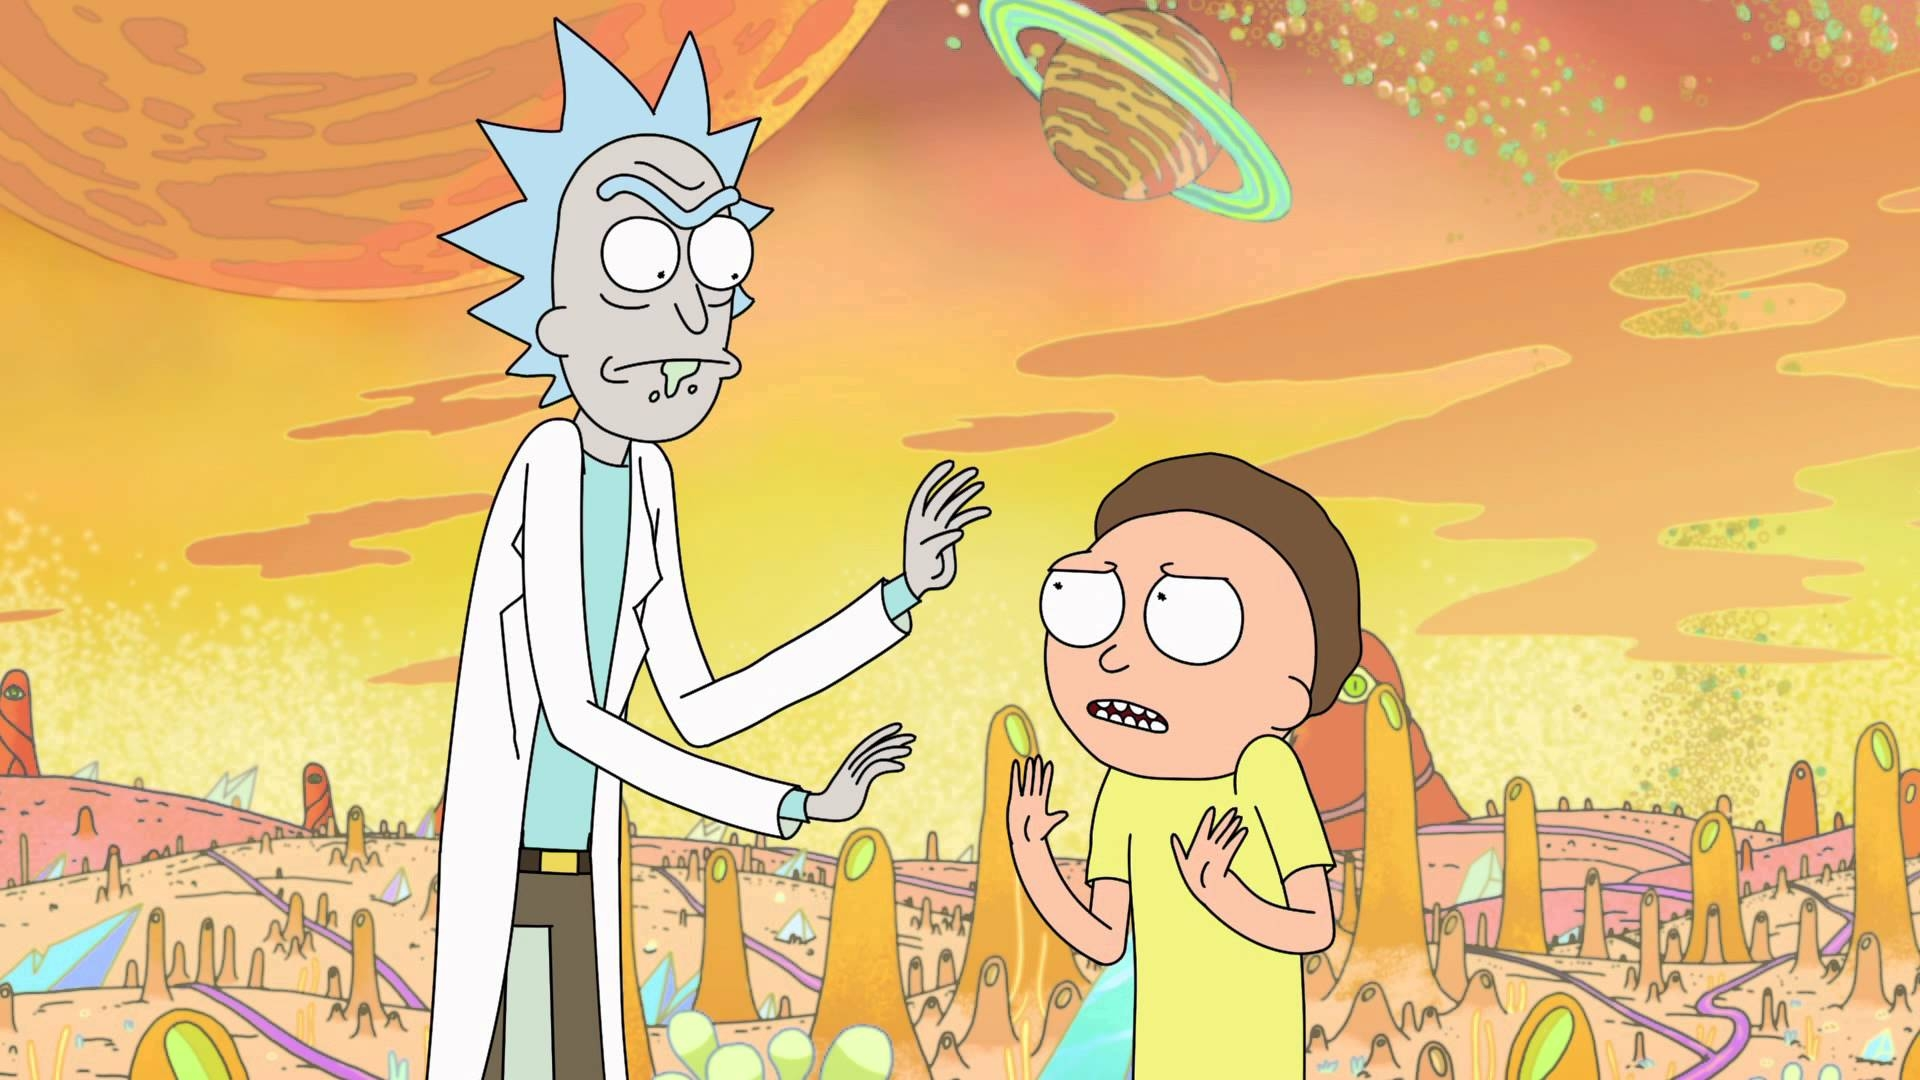 Rick and morty wallpapers high quality download free - Rick and morty download ...